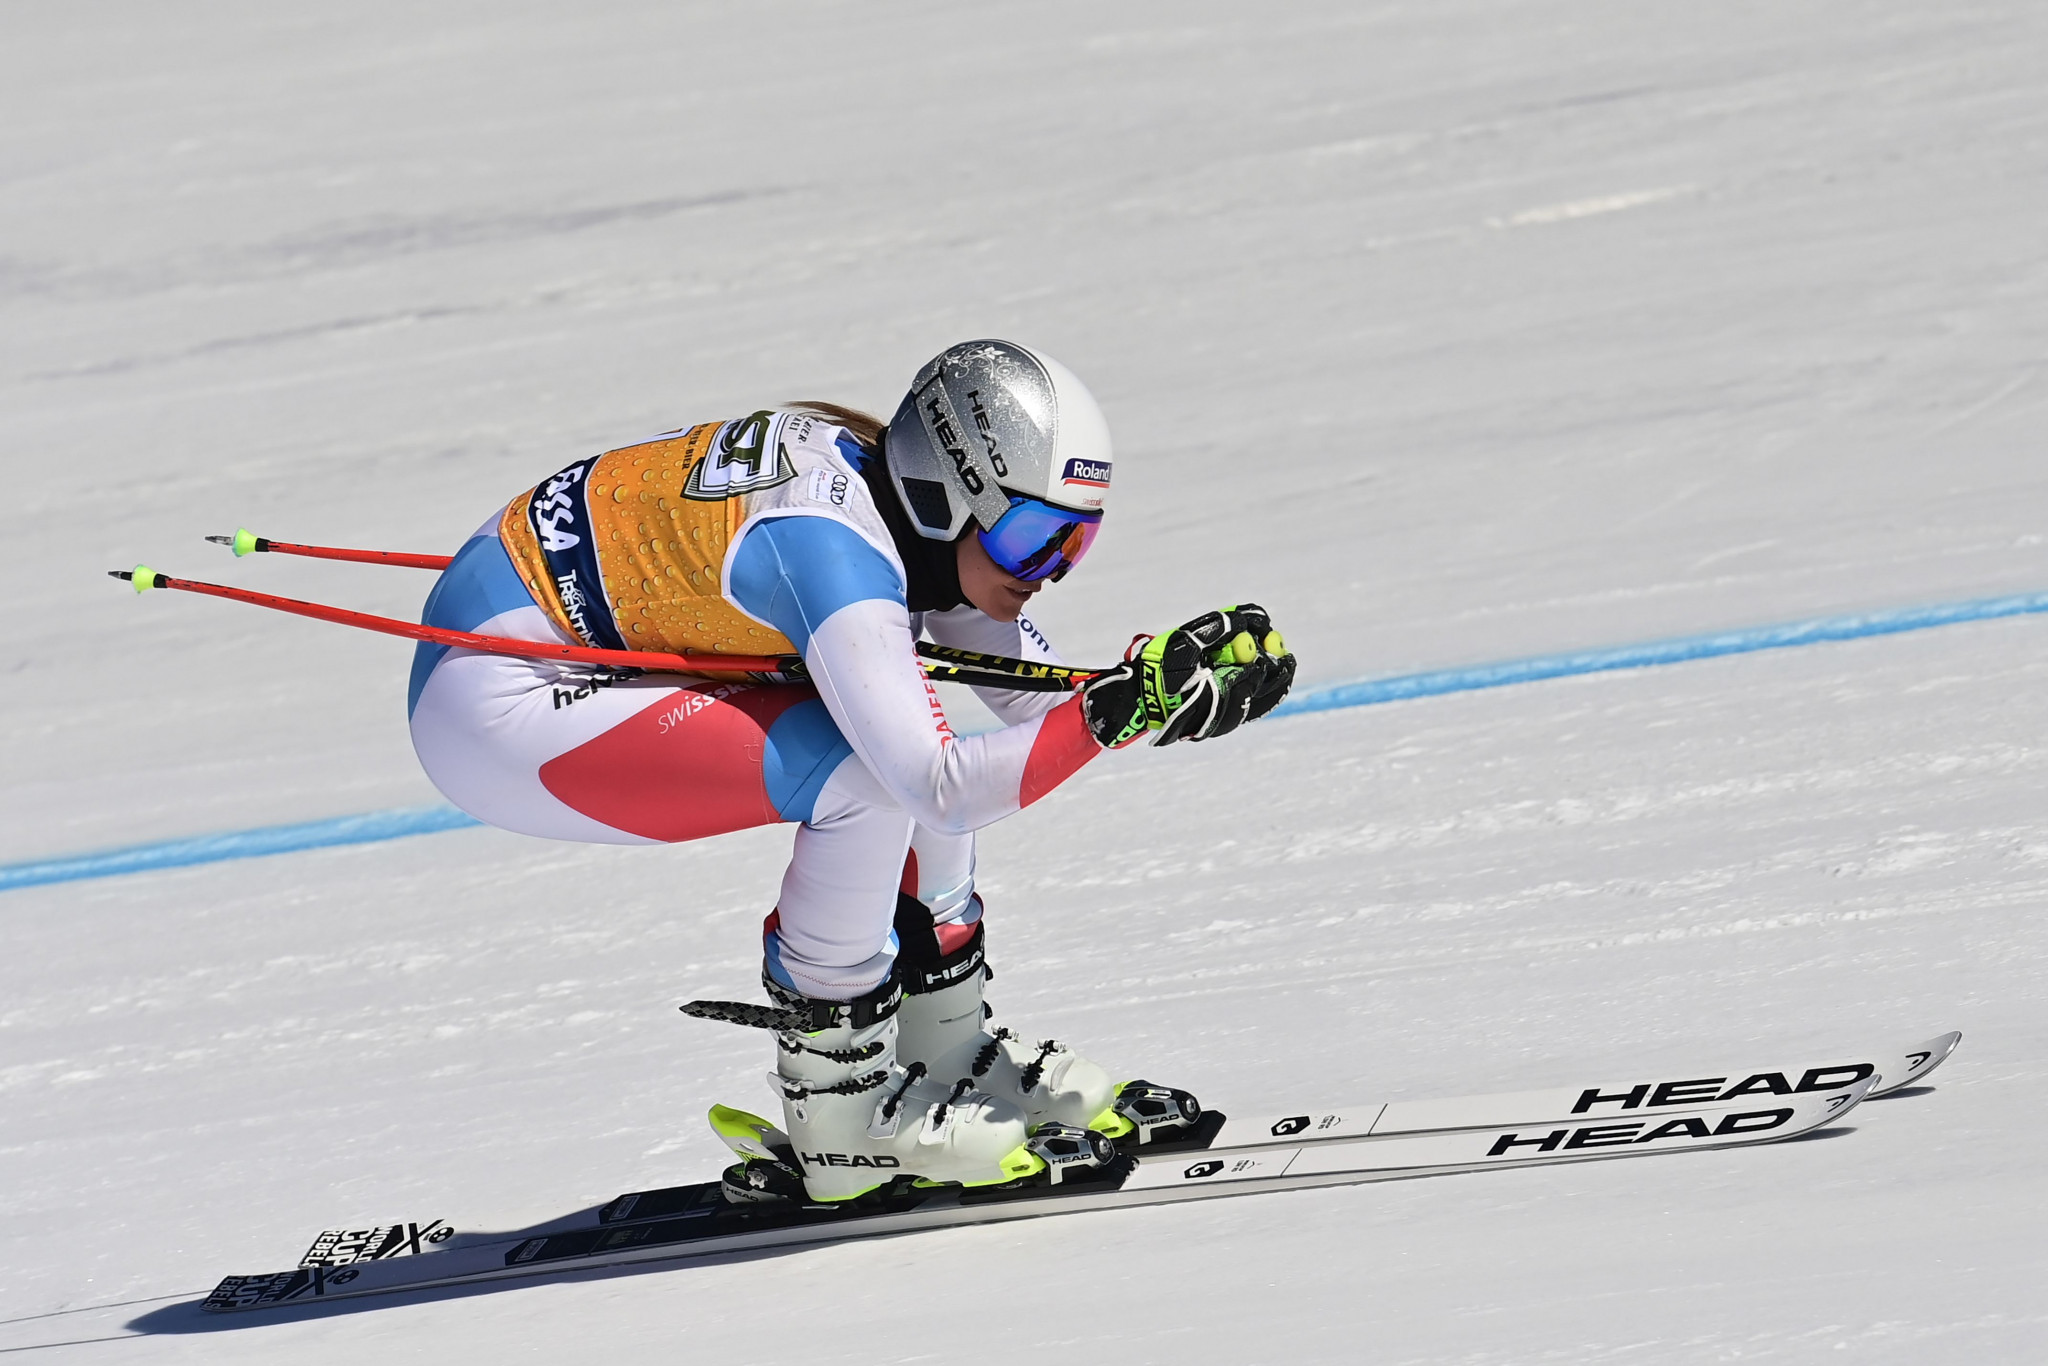 Corinne Suter will be looking to continue her downhill form in the FIS Alpine Ski World Cup ©Getty Images